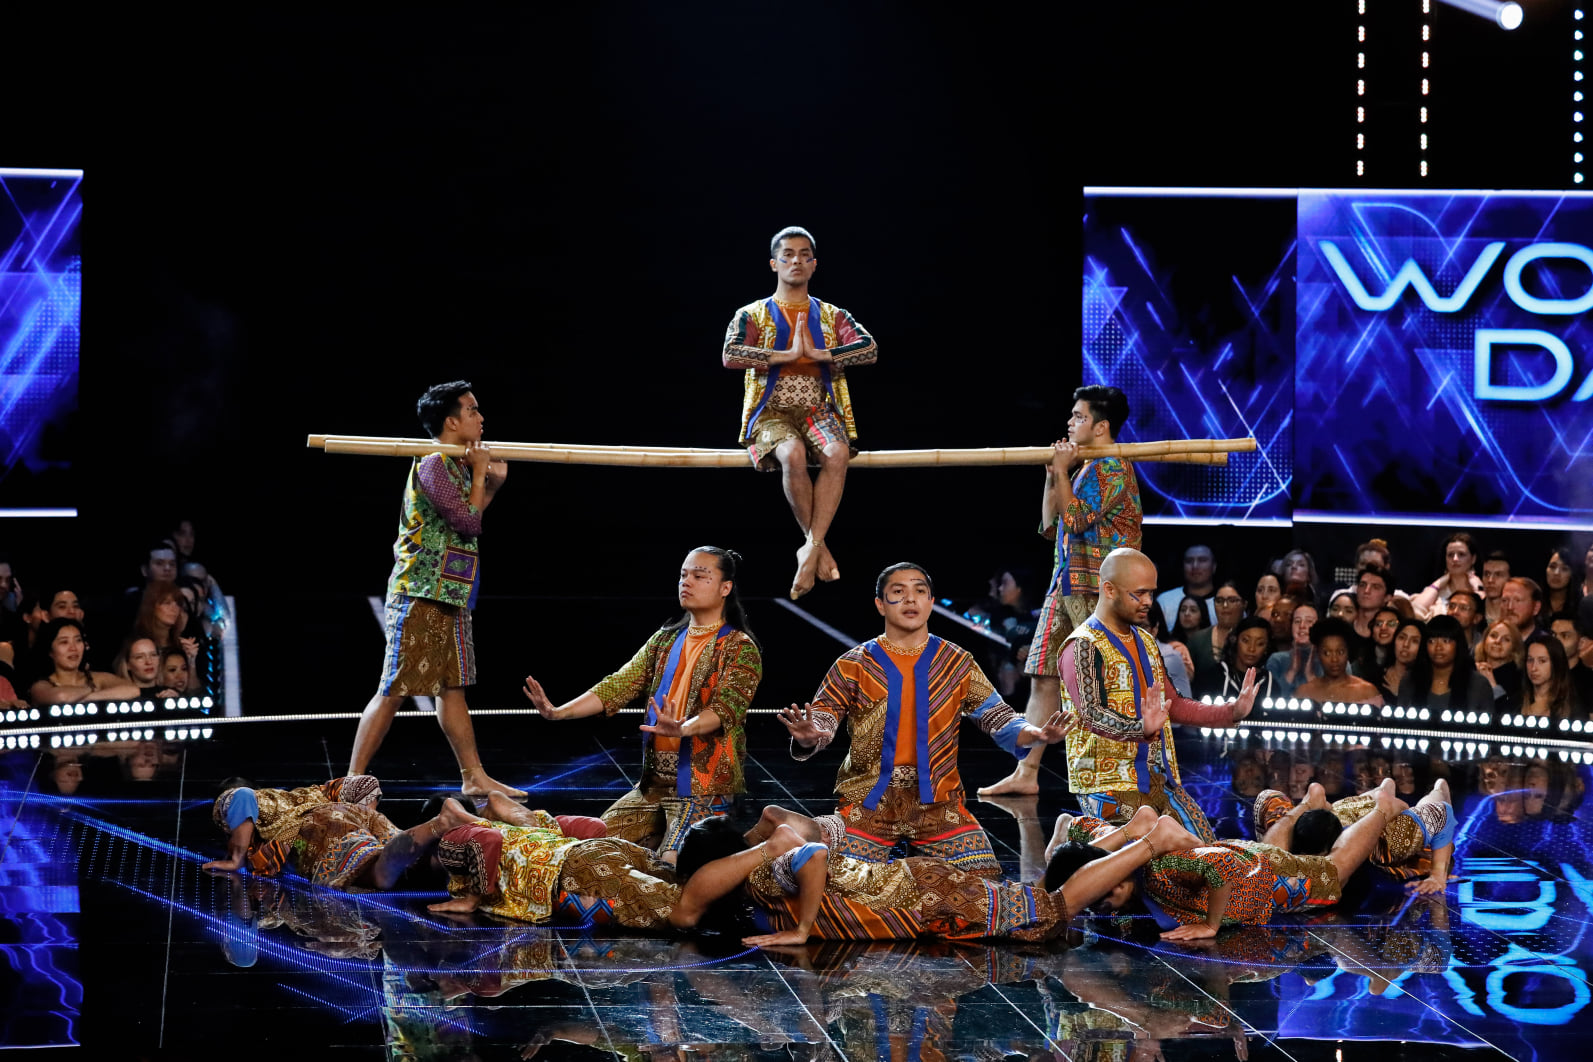 UPeepz Philippine heritage NBC's World of Dance